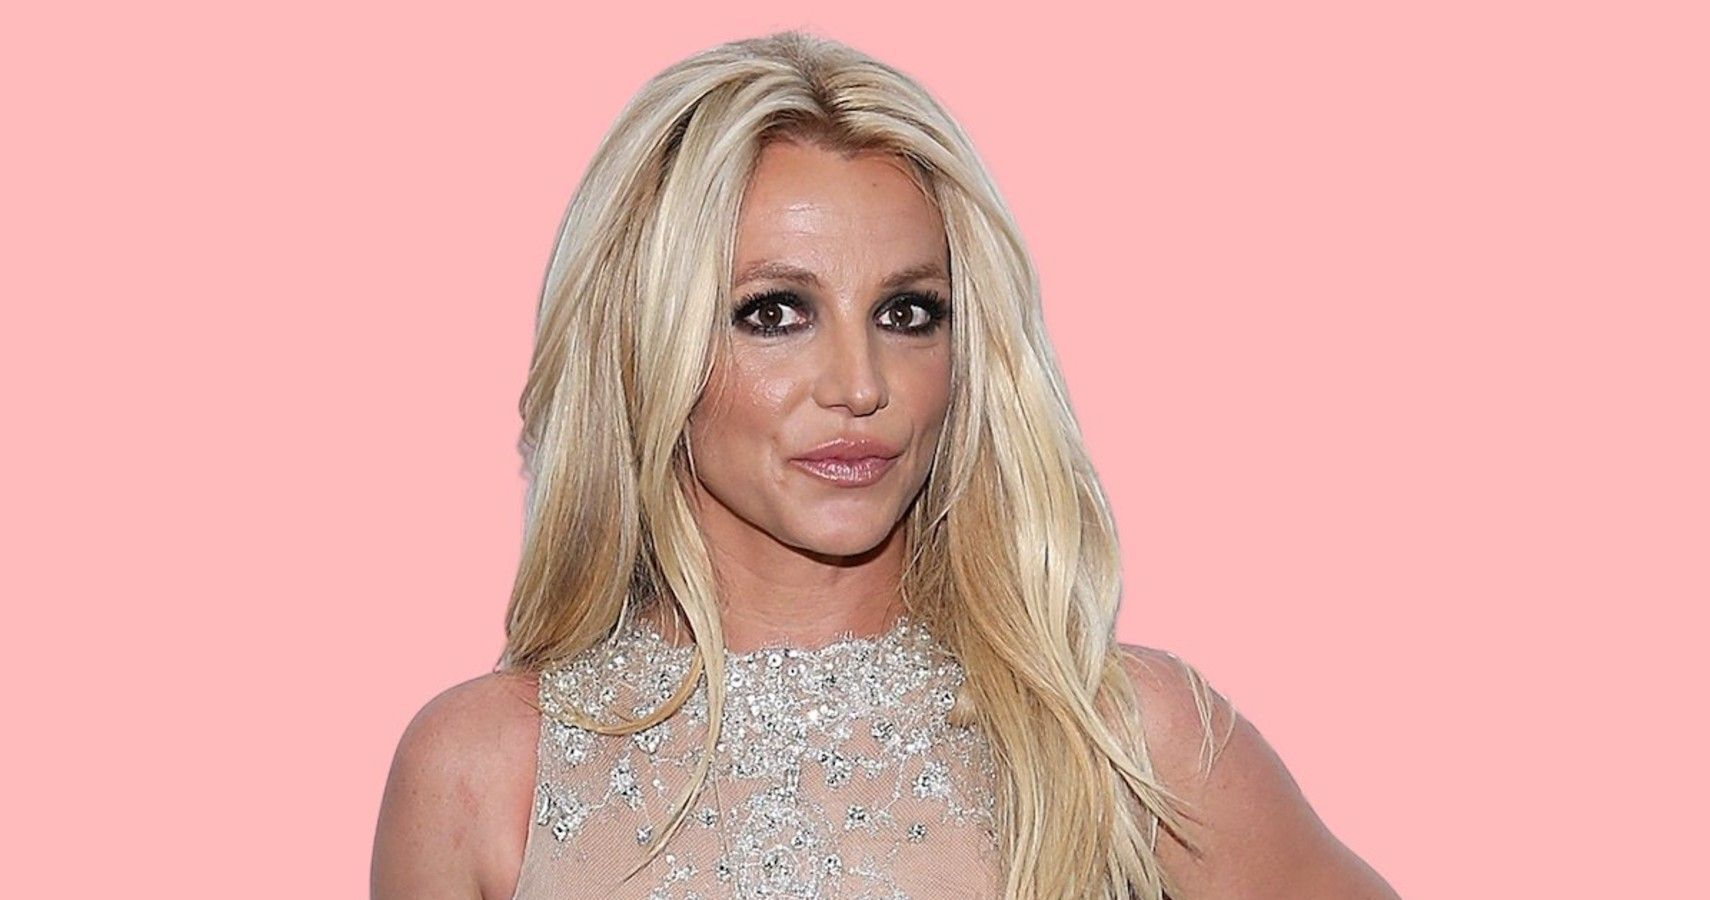 10 Reasons Fans Don't Think Britney Spears Controls Her Own Social Media